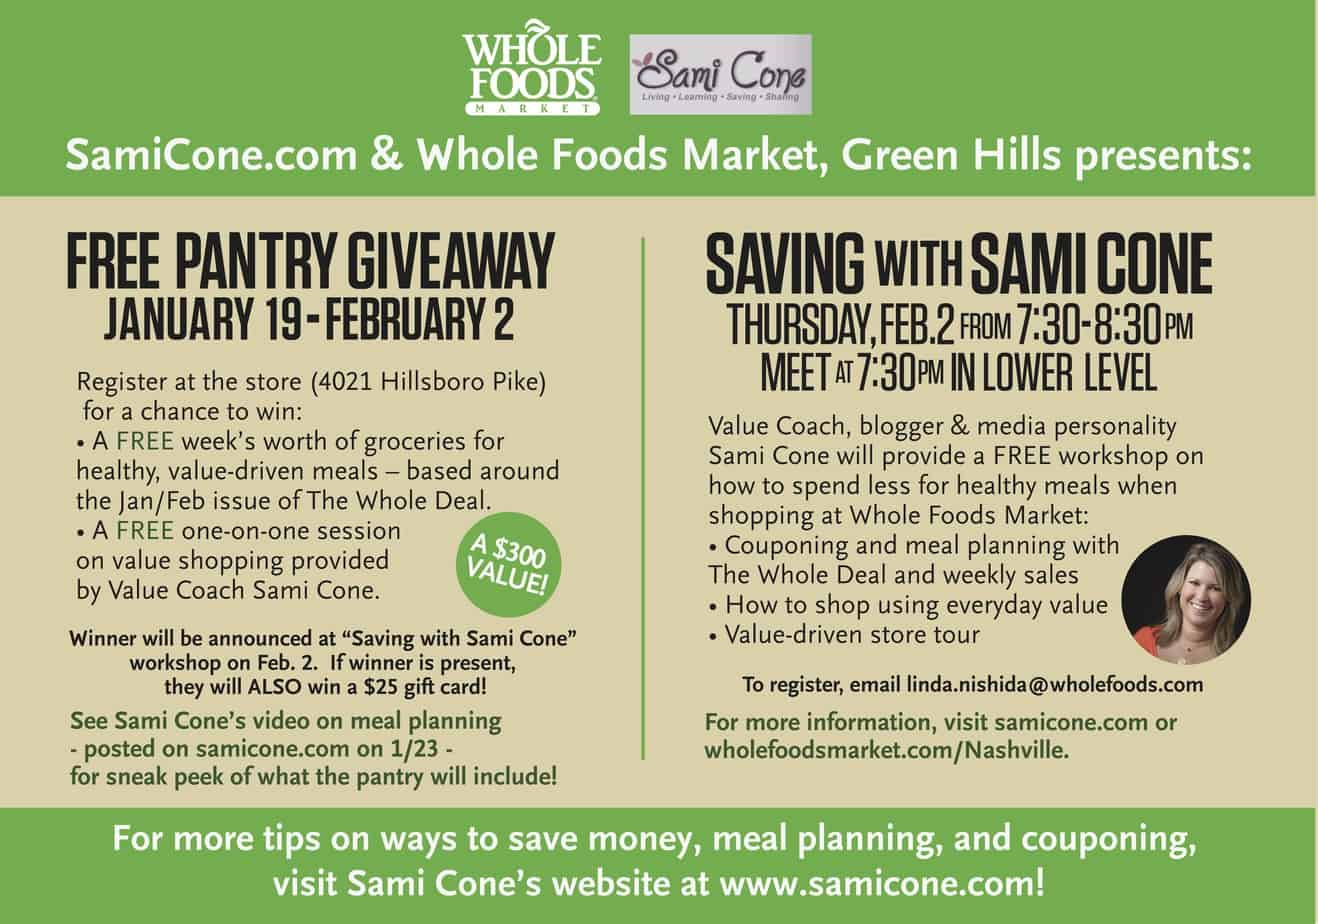 whole-foods-market-green-hills-giveaway-workshop